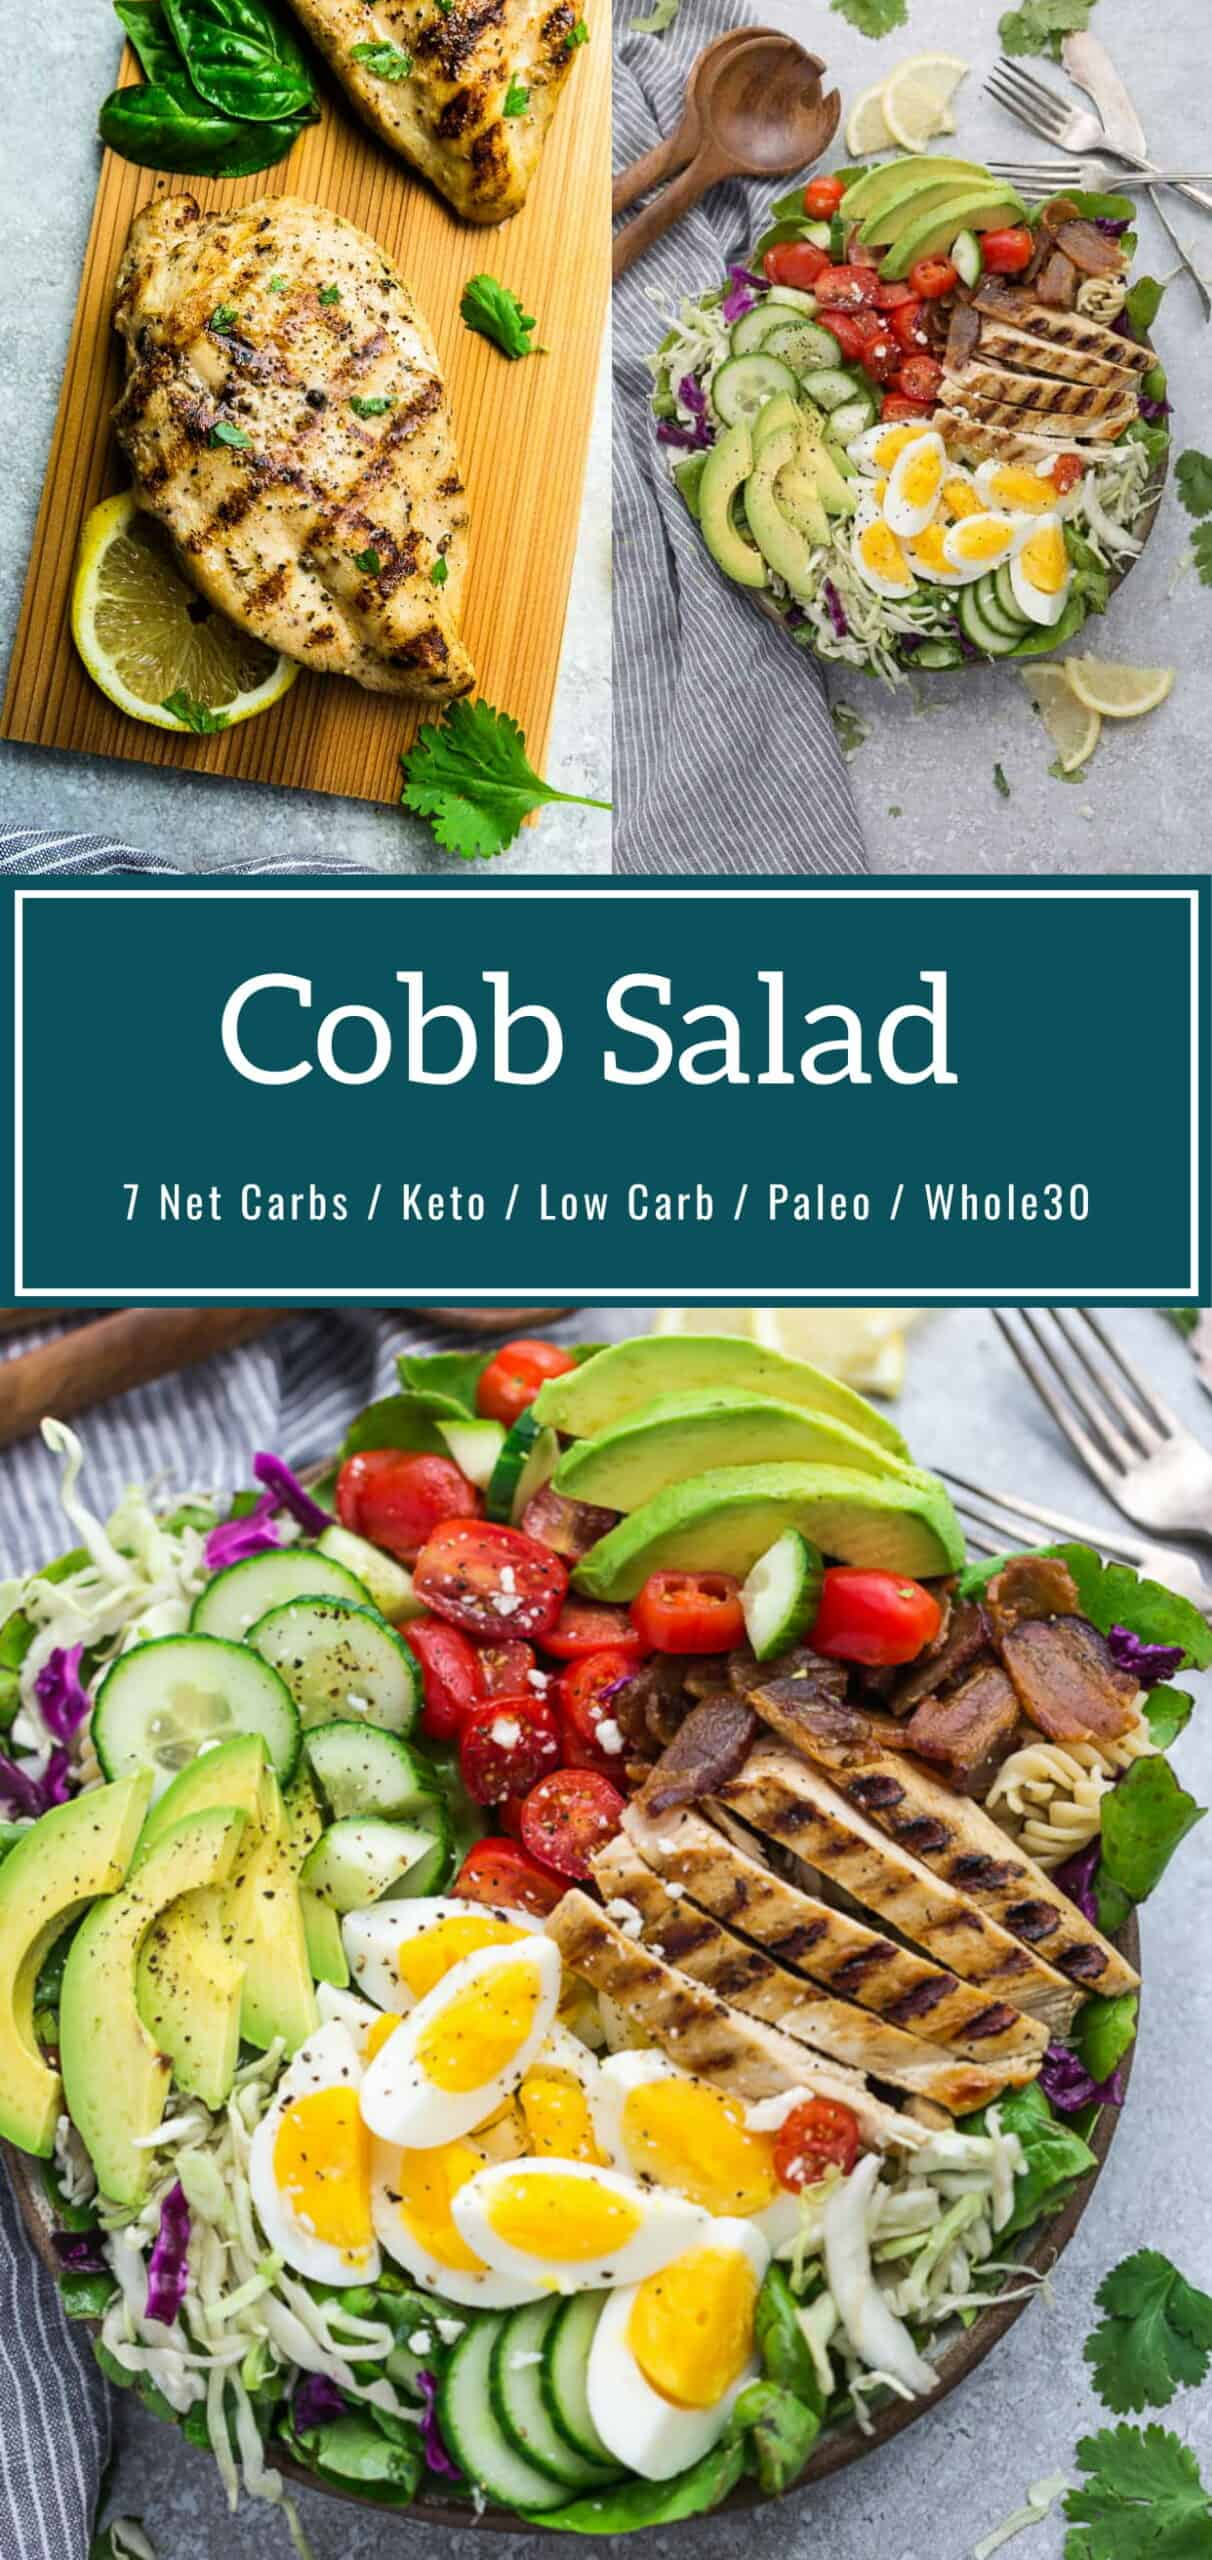 Cobb Salad With Chicken Recipe